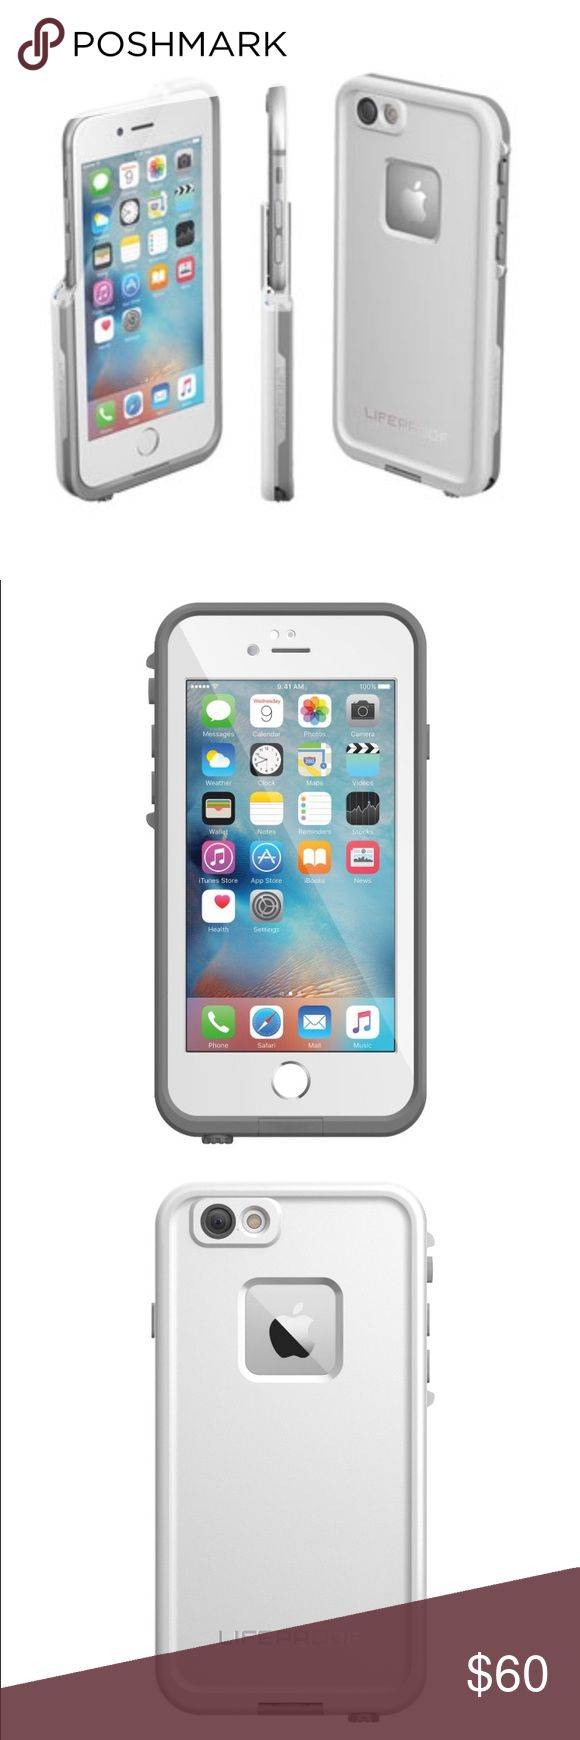 LifeProof FRE Waterproof iPhone 6/6s Case Case was only used for one week and is in great condition!   LifeProof FRE Waterproof Case for iPhone 6/6s (4.7-Inch Version)- Avalanche (Bright White/Cool Grey) - SKU 77-52564 - Built-in scratch protector, full access to buttons and controls - charge and sync through the micro USB port. WATERPROOF Submersible to 6.6 feet / 2 meters for 1 hour SNOWPROOF Closed to snow and ice DIRTPROOF Sealed from dirt and dust - DROPPROOF Survives drops from 6.6…